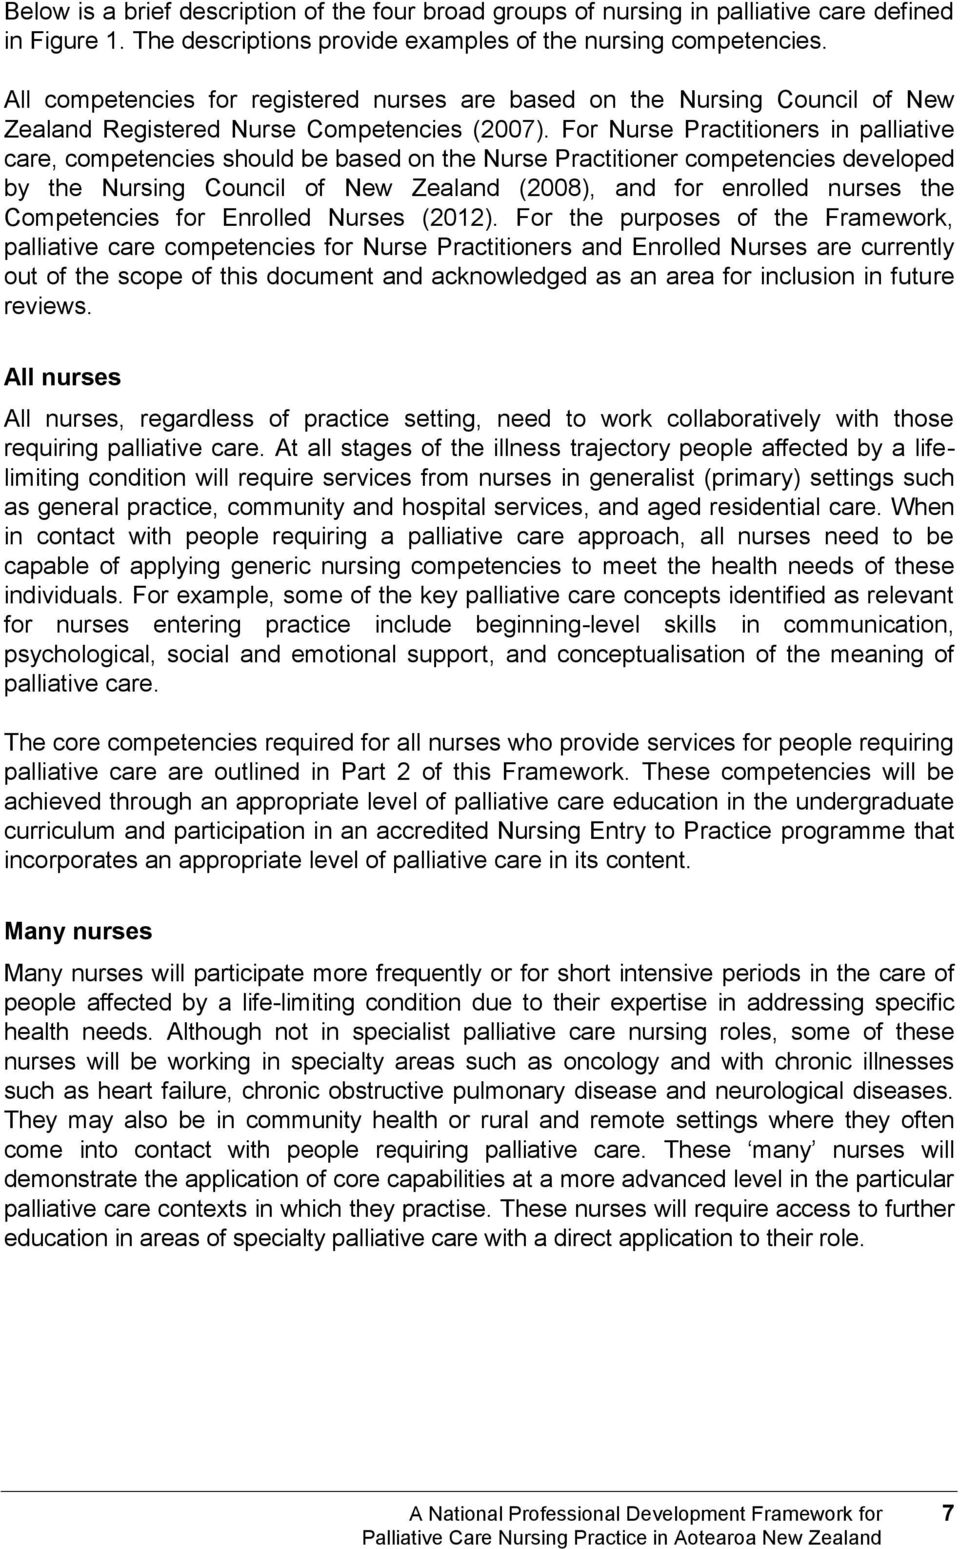 For Nurse Practitioners in palliative care, competencies should be based on the Nurse Practitioner competencies developed by the Nursing Council of New Zealand (2008), and for enrolled nurses the